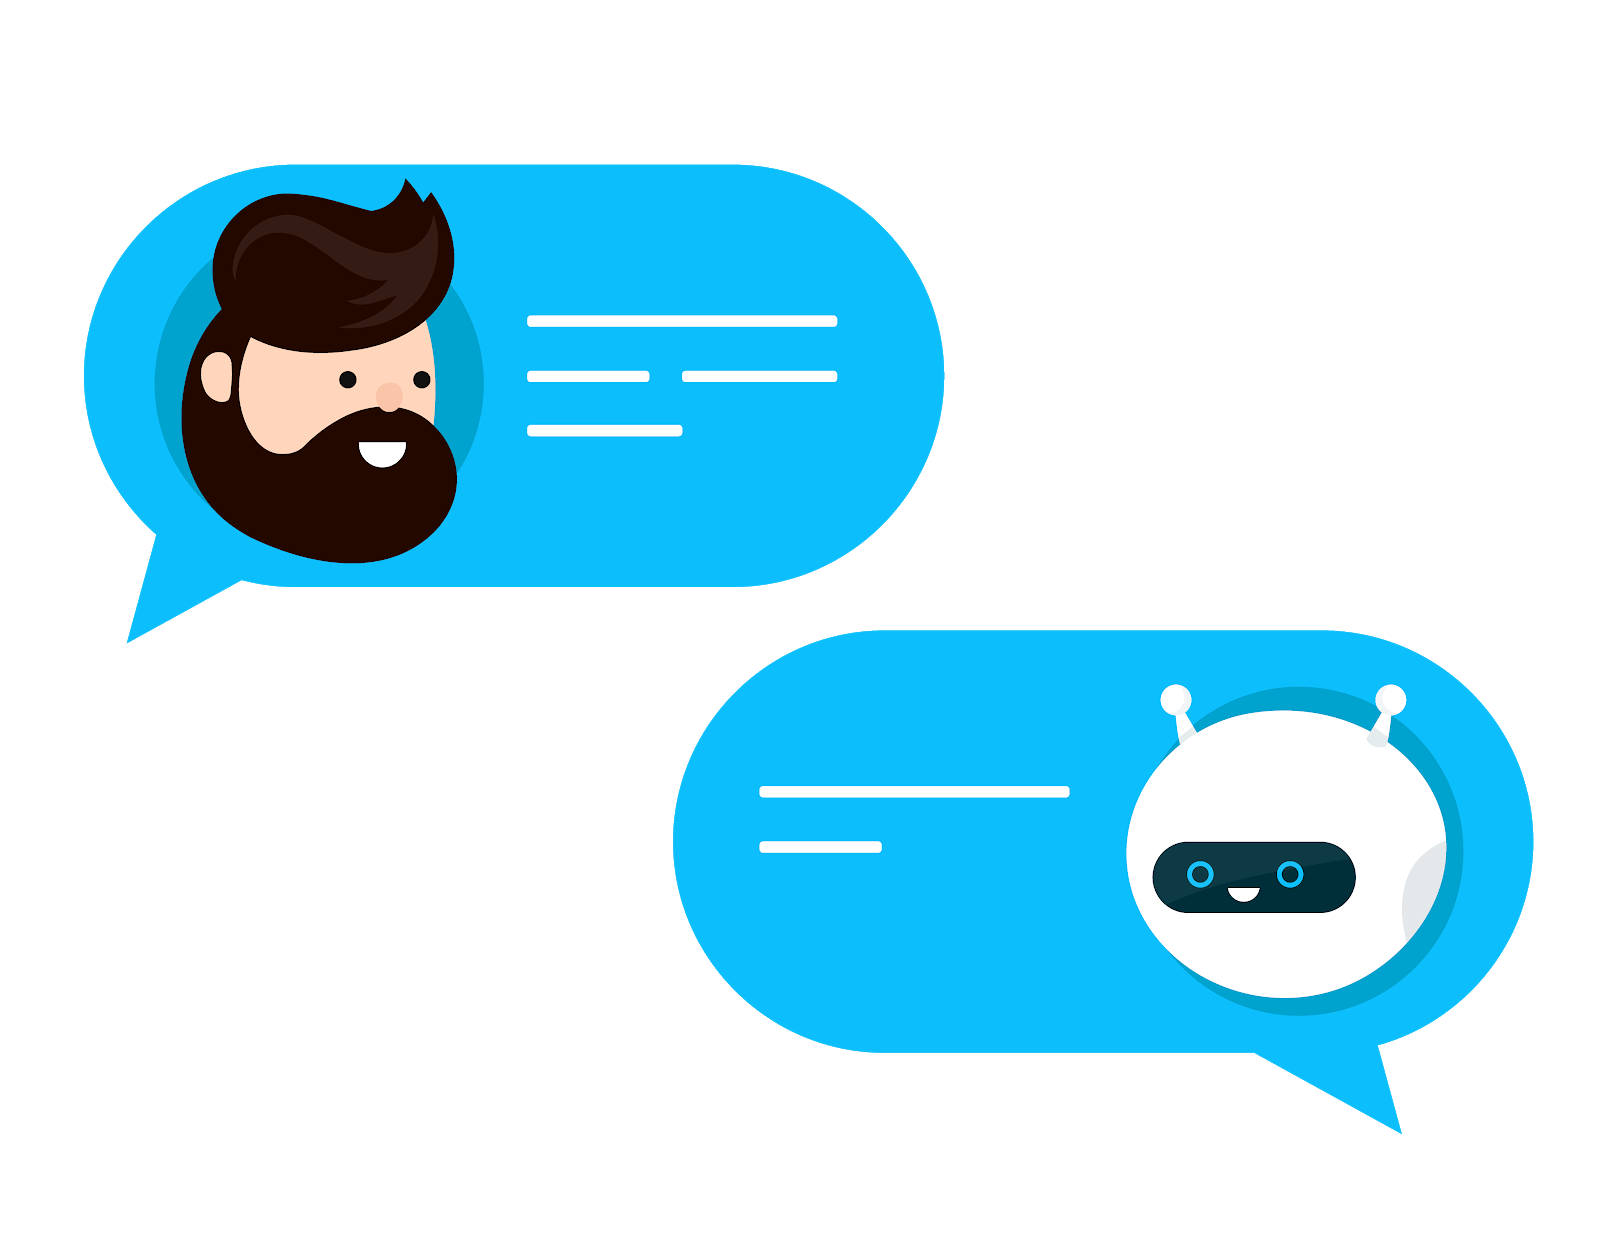 An adorable depiction of a user and chatbot talking to each other